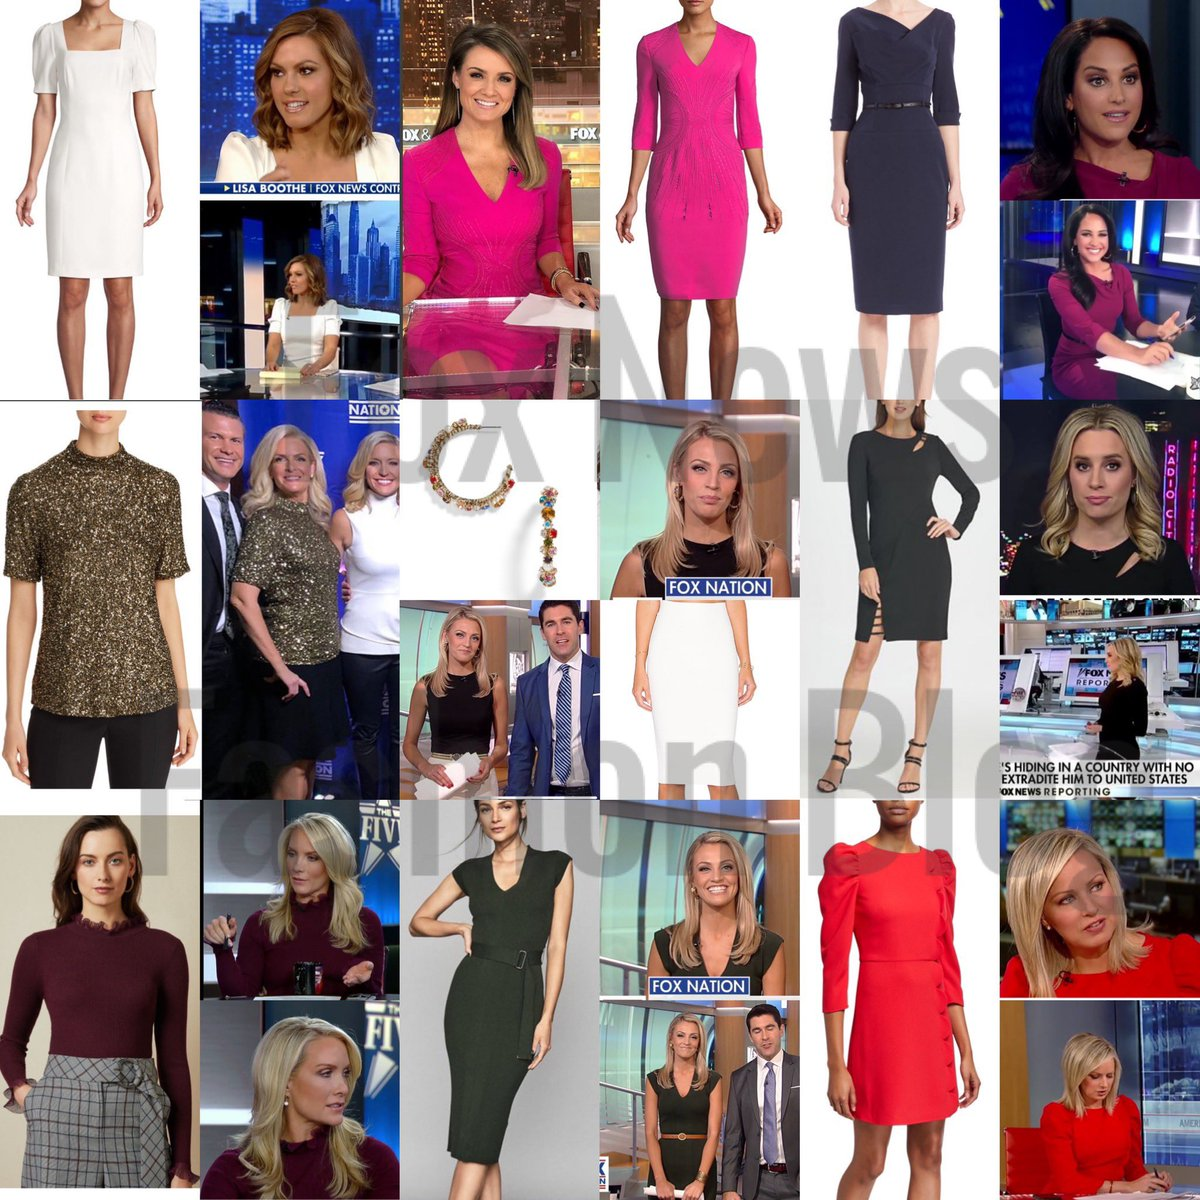 This week's outfits have been added to the blog! Some of them are on major sale, too! Head to the blog for all the details: https://foxnews.fashion.blog/anchors/ pic.twitter.com/cvKHKF2F89